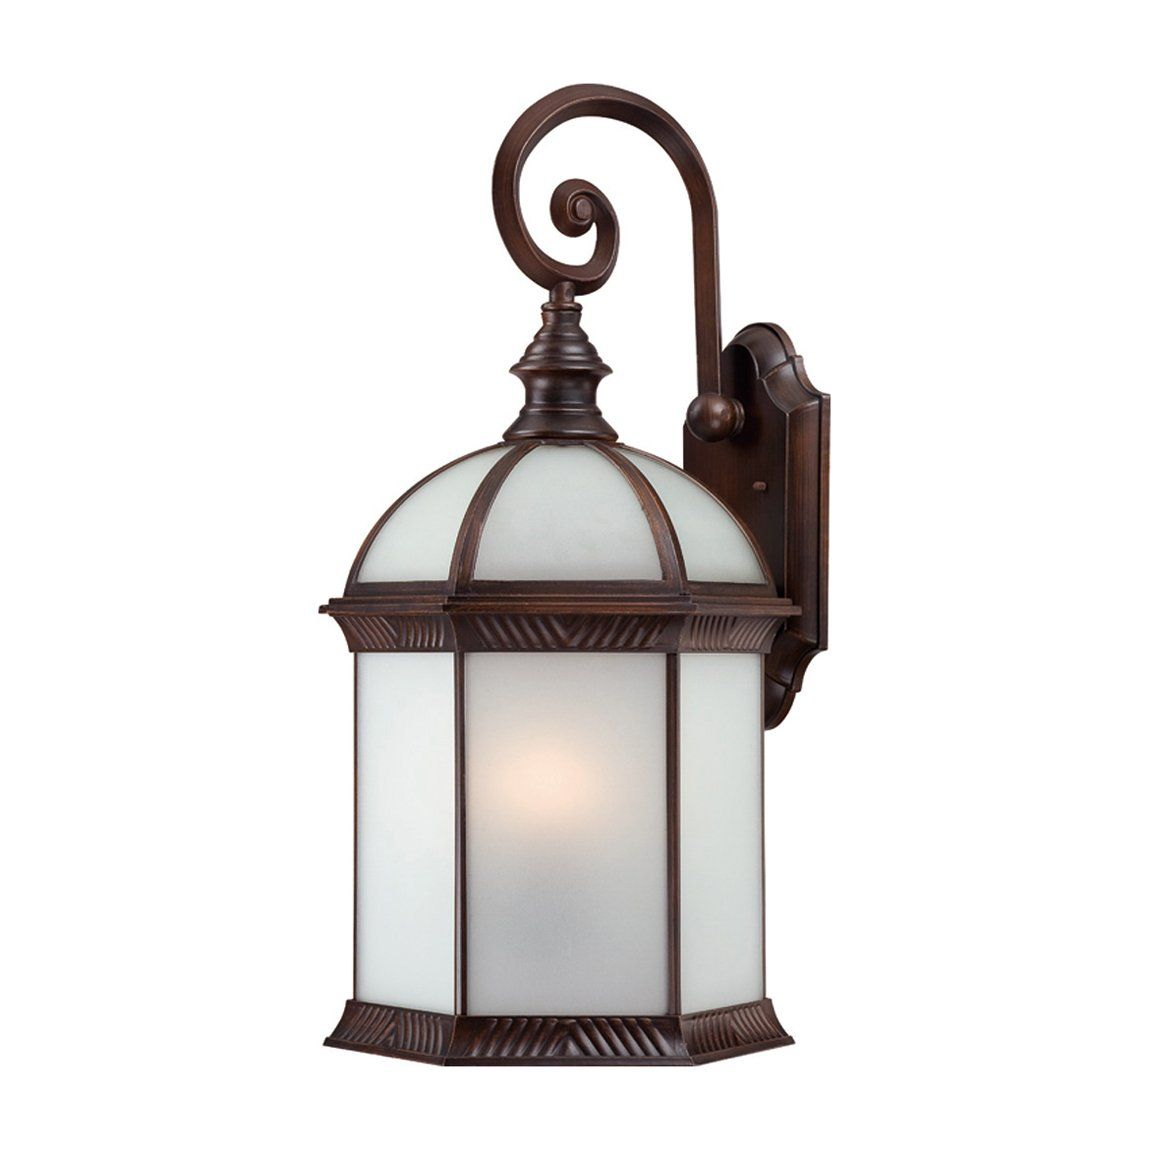 Outdoor Wall Light Accessories: Dus, To DawnNuvo Lighting 60-498 Boxwood ES 1 Light 26-in